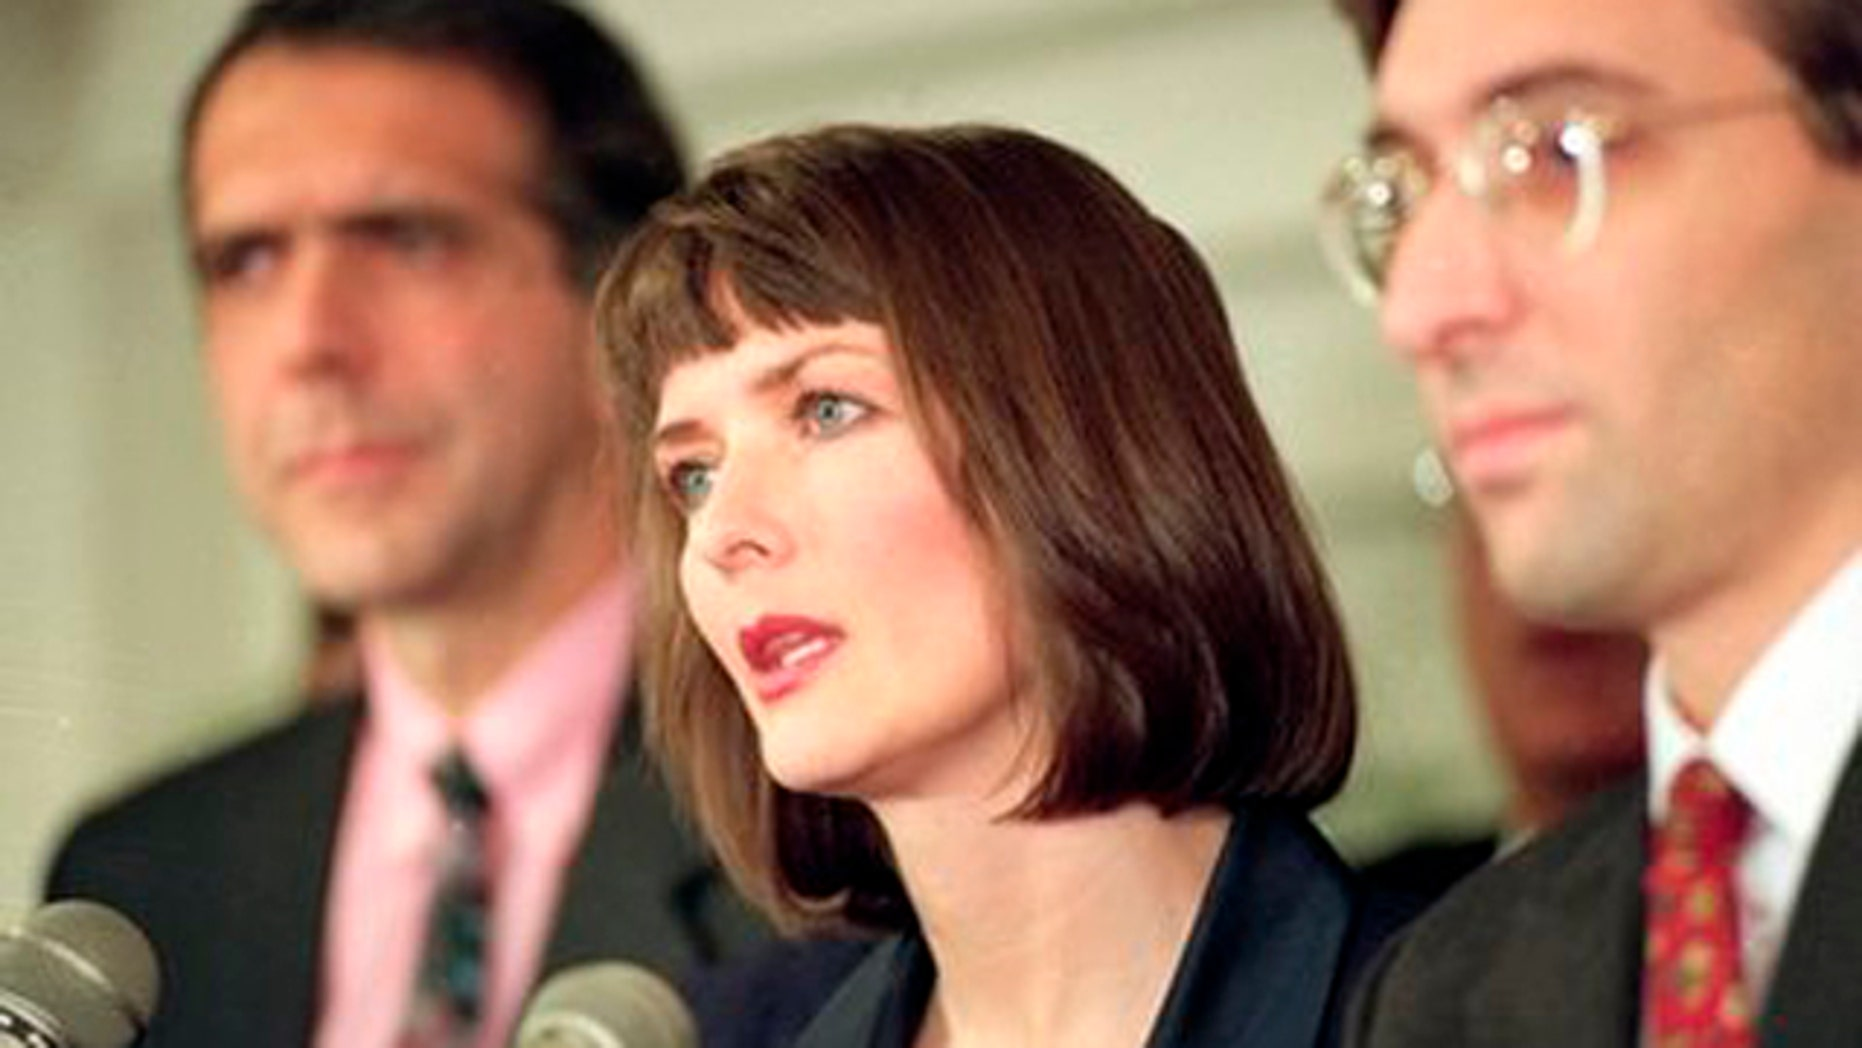 In this Dec. 10, 1992 file photo, flanked by her attorneys Frank Morocco, left, and Sheldon T. Zenner, right, Lawrencia Bembenek answers questions at a new conference in Chicago, Ill.